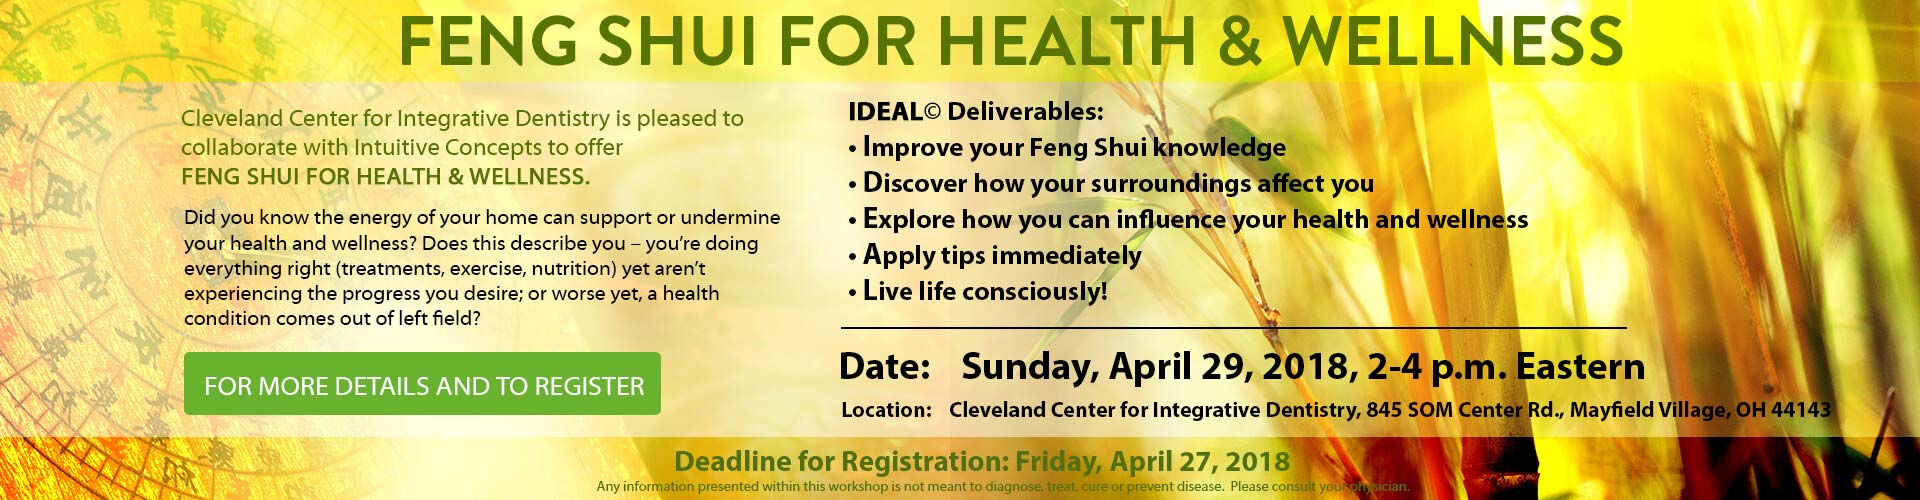 offer Feng Shui for Health & Wellness